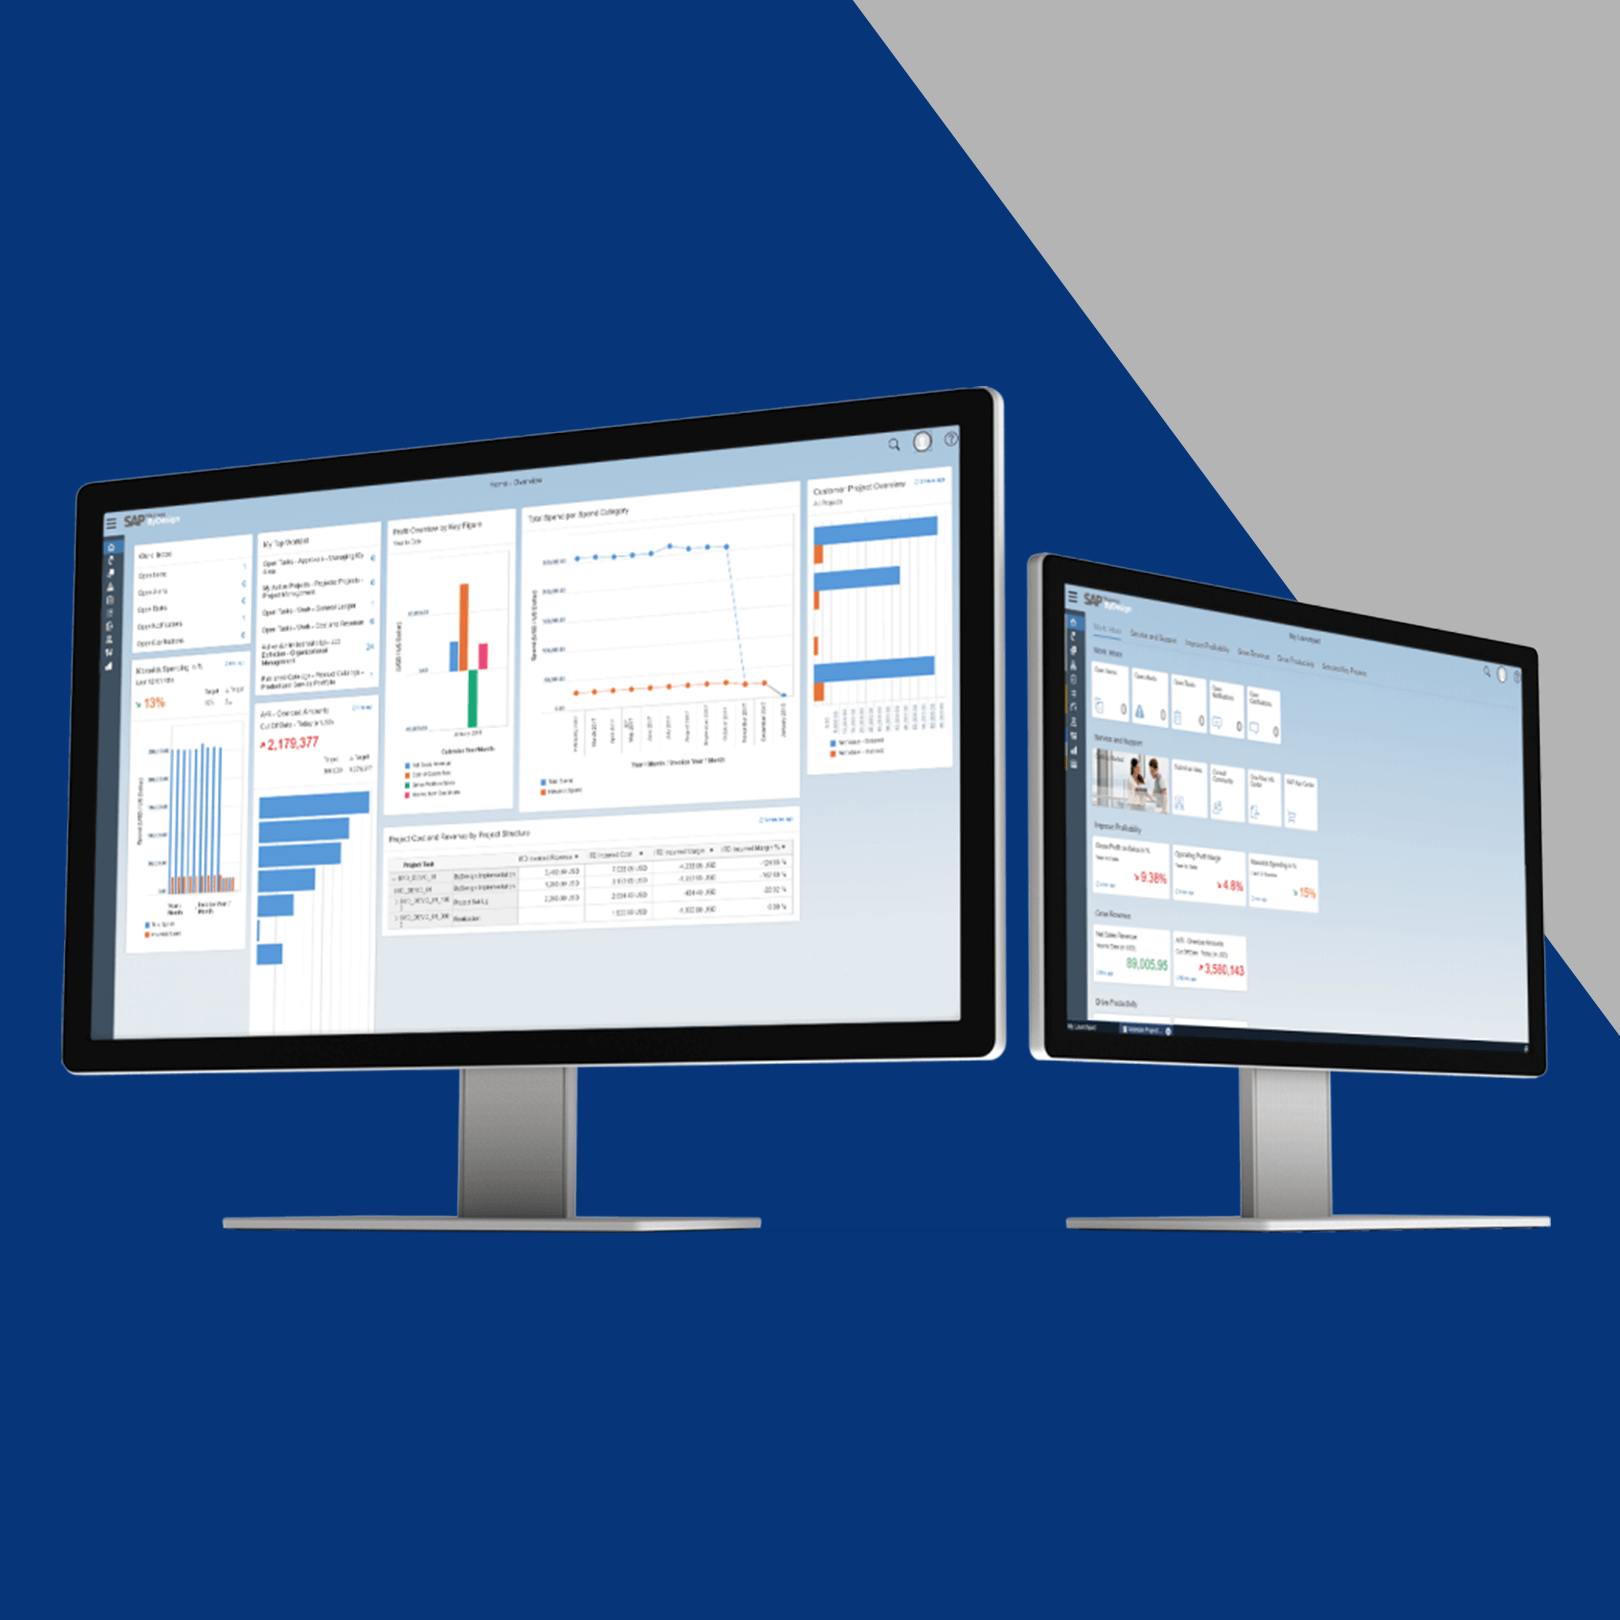 SAP Business By Design on Monitors